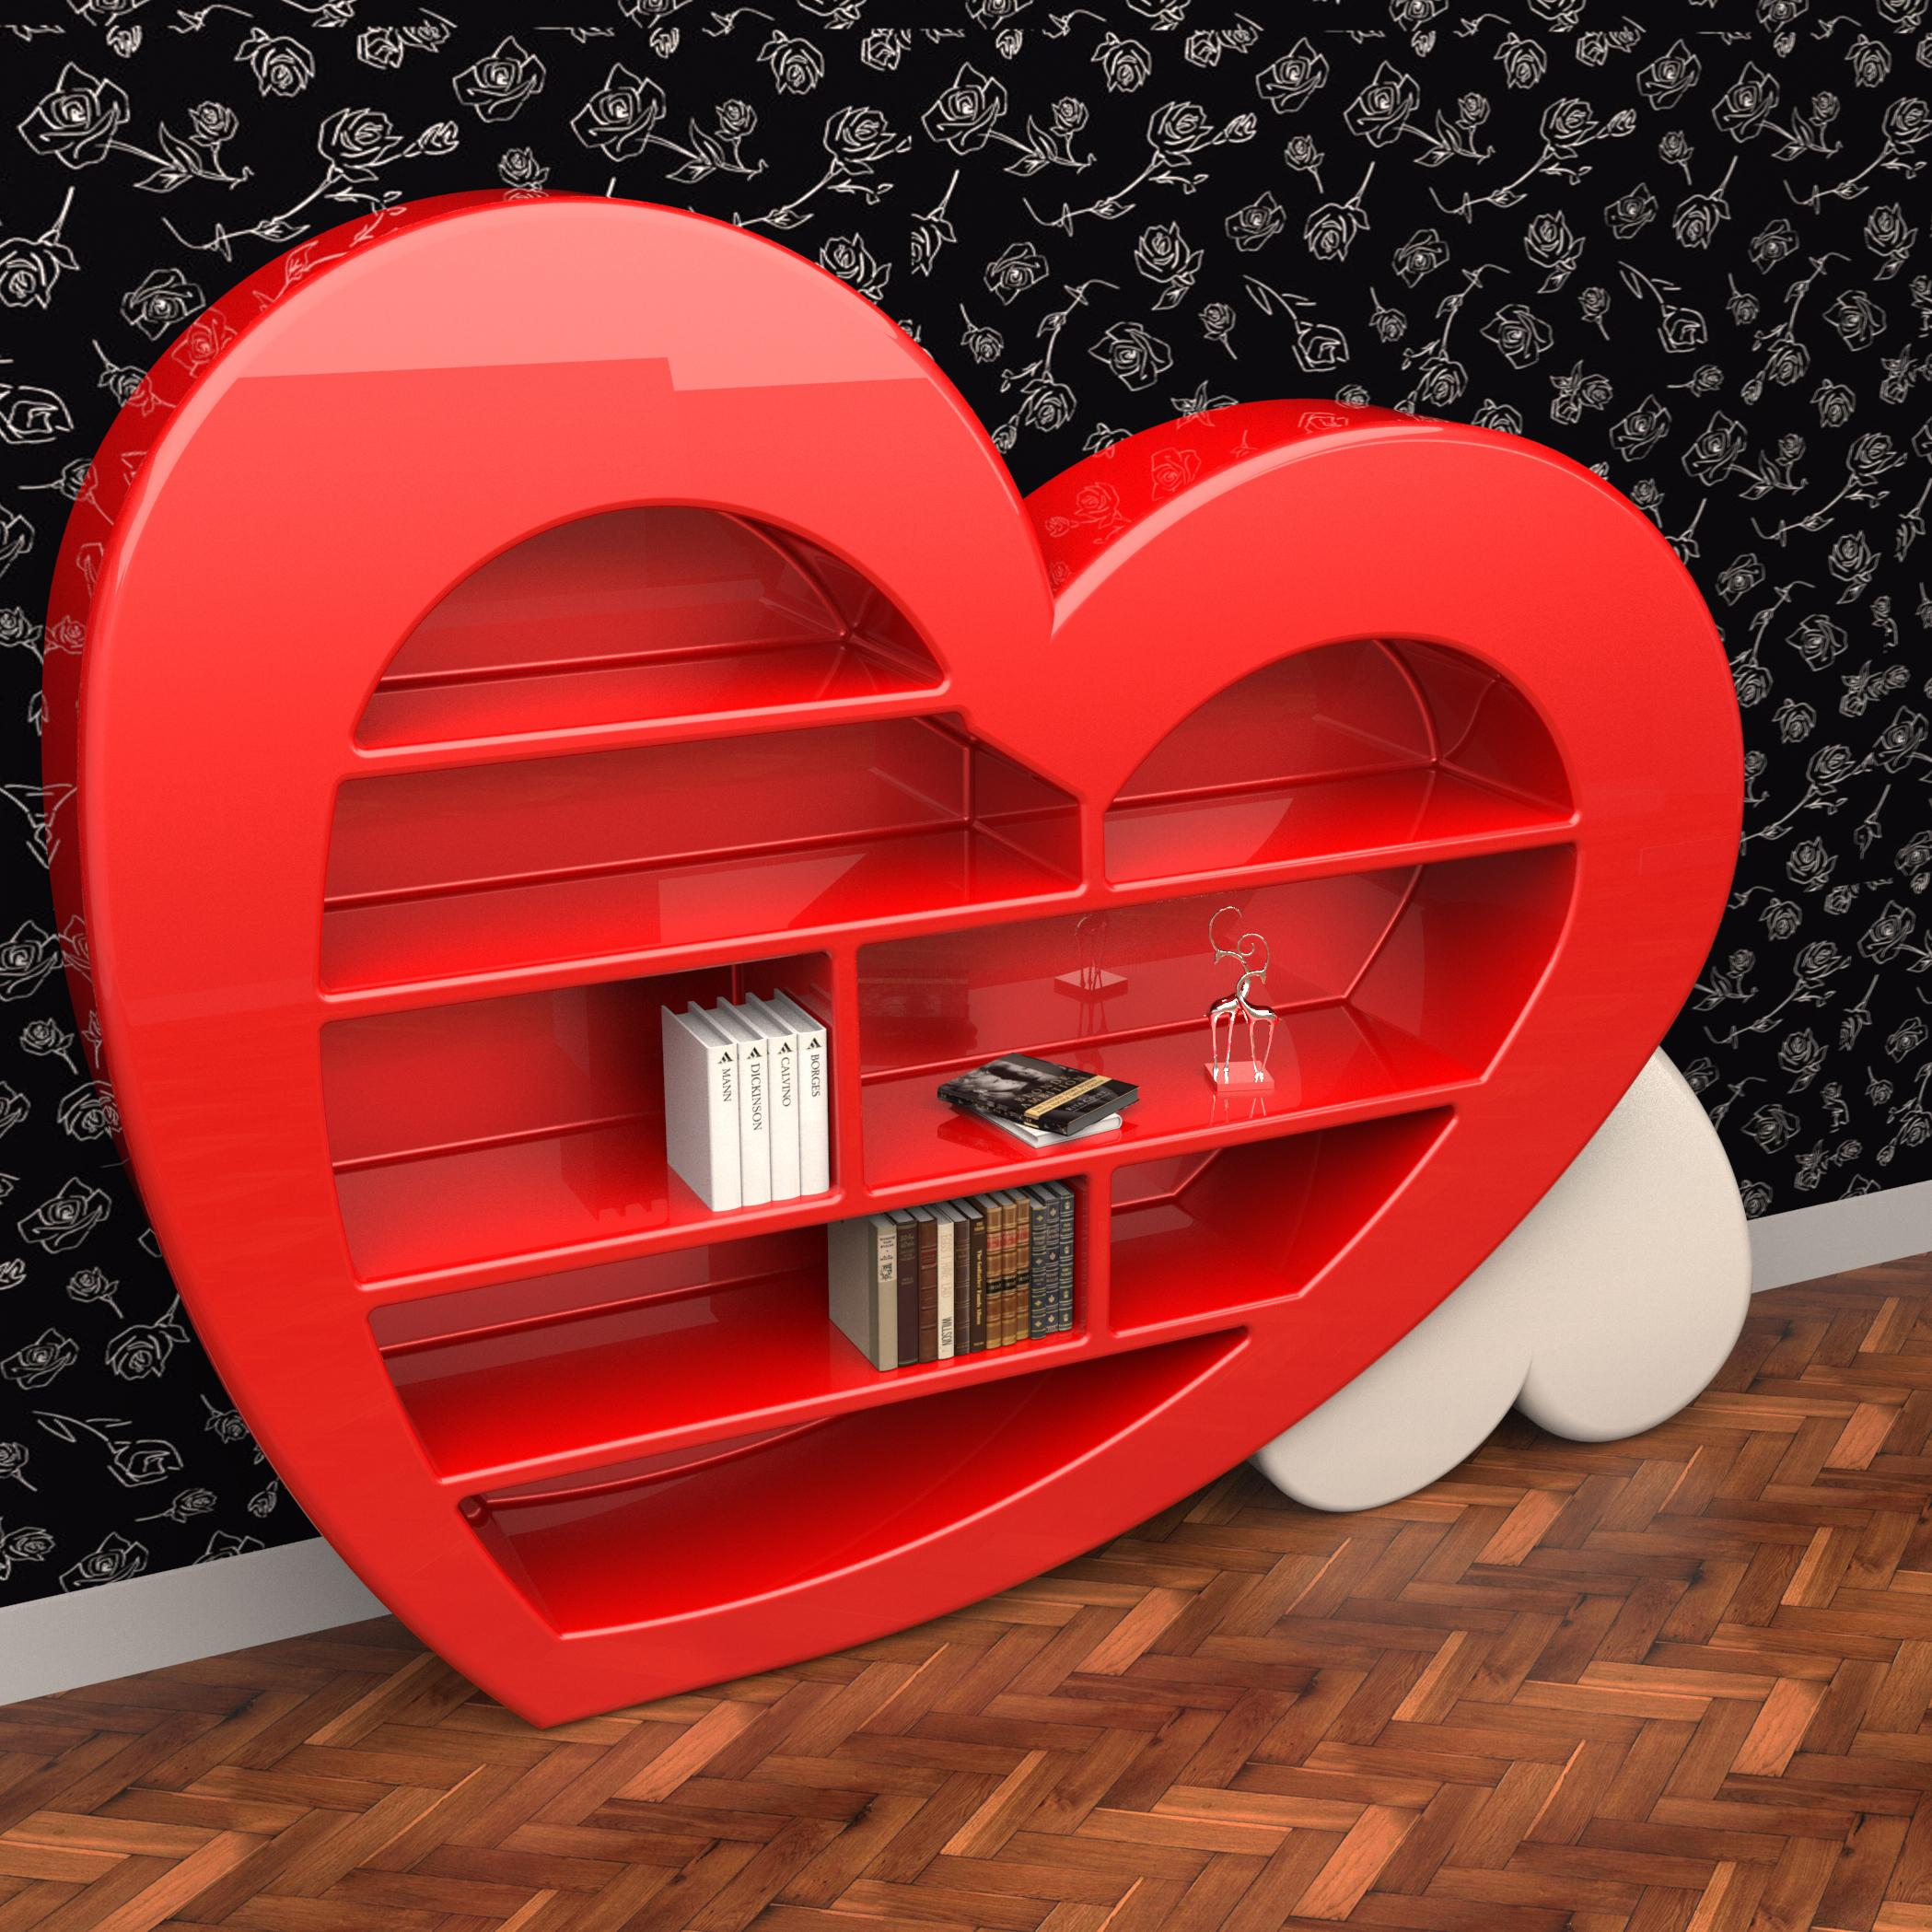 Cuore libreria   italy dream design